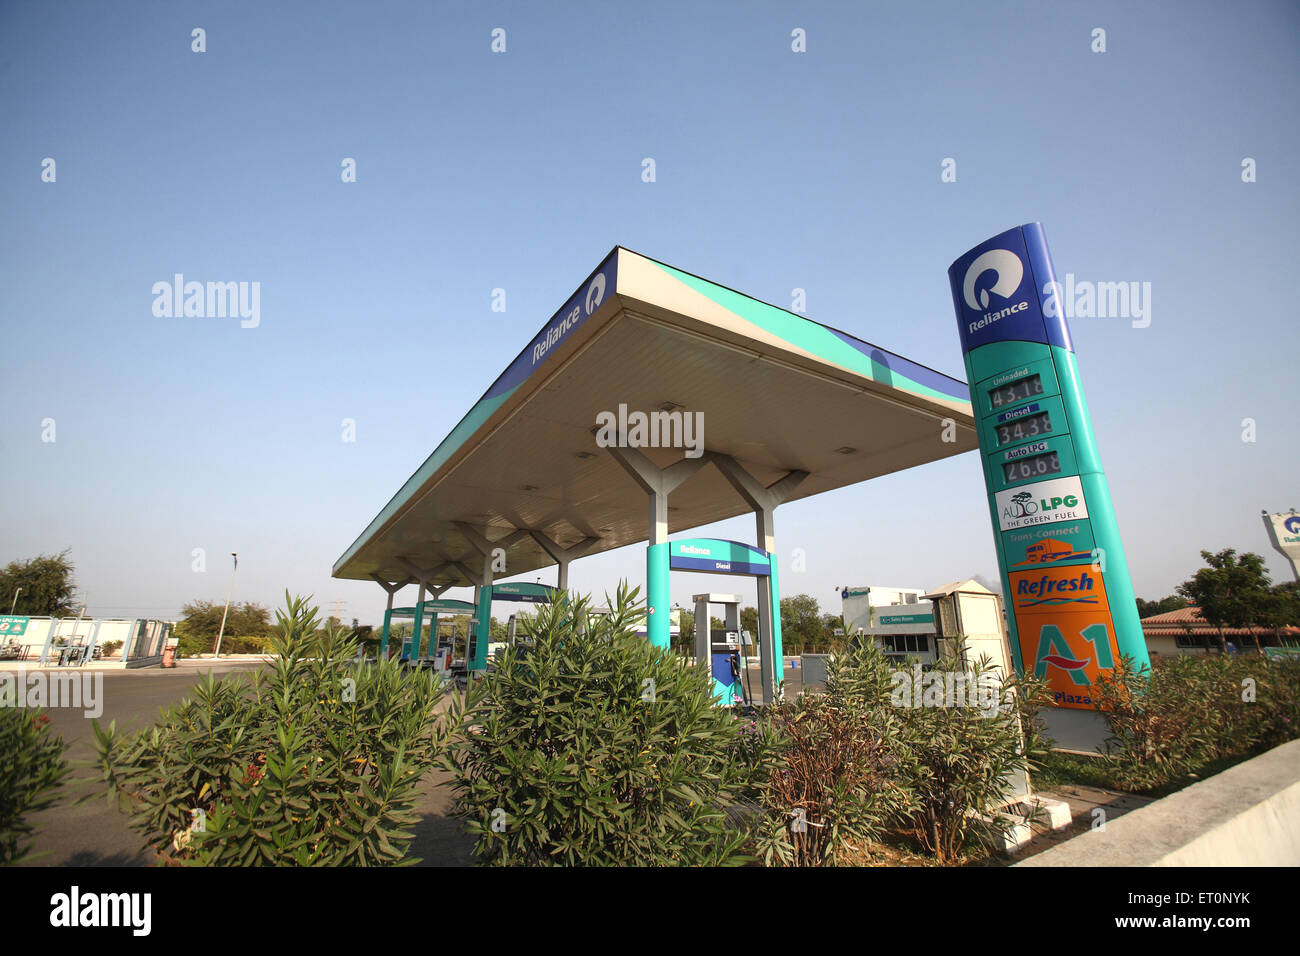 Petrol pump by reliance industries ; Rajasthan ; India - Stock Image